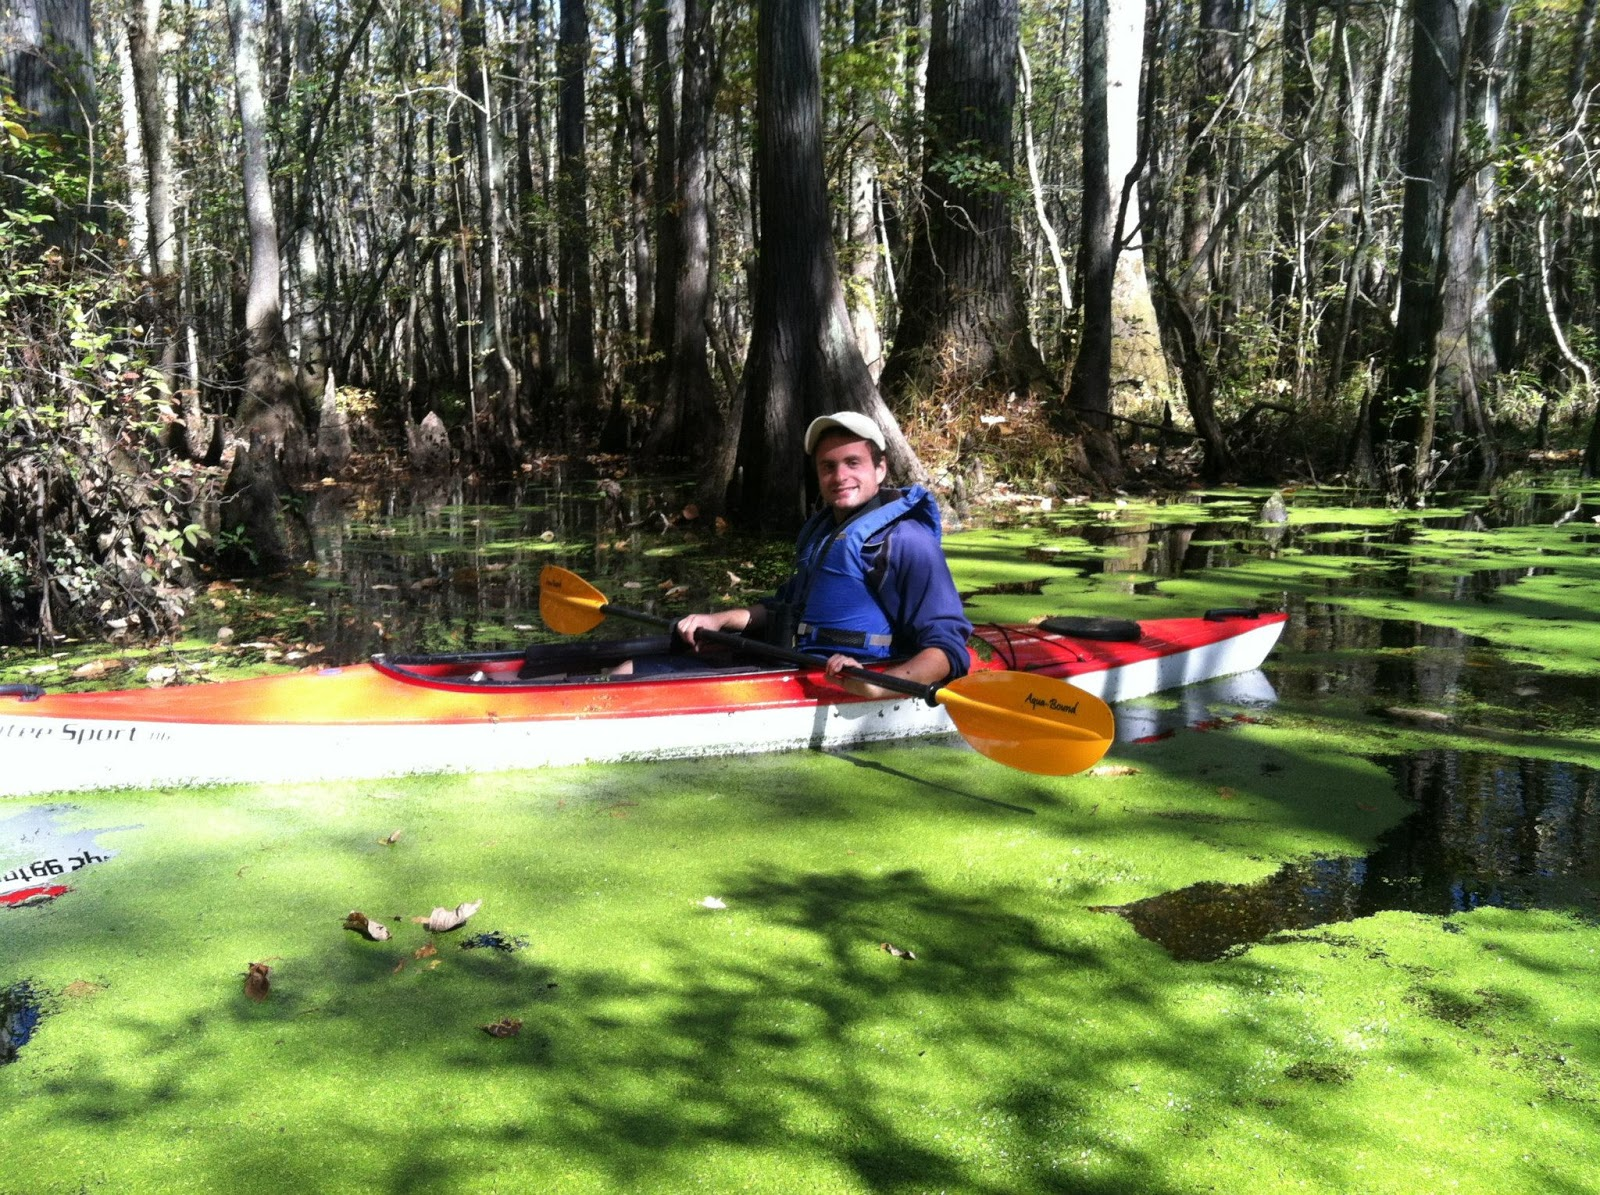 figure 12 myself kayaking through a swamp in north carolina